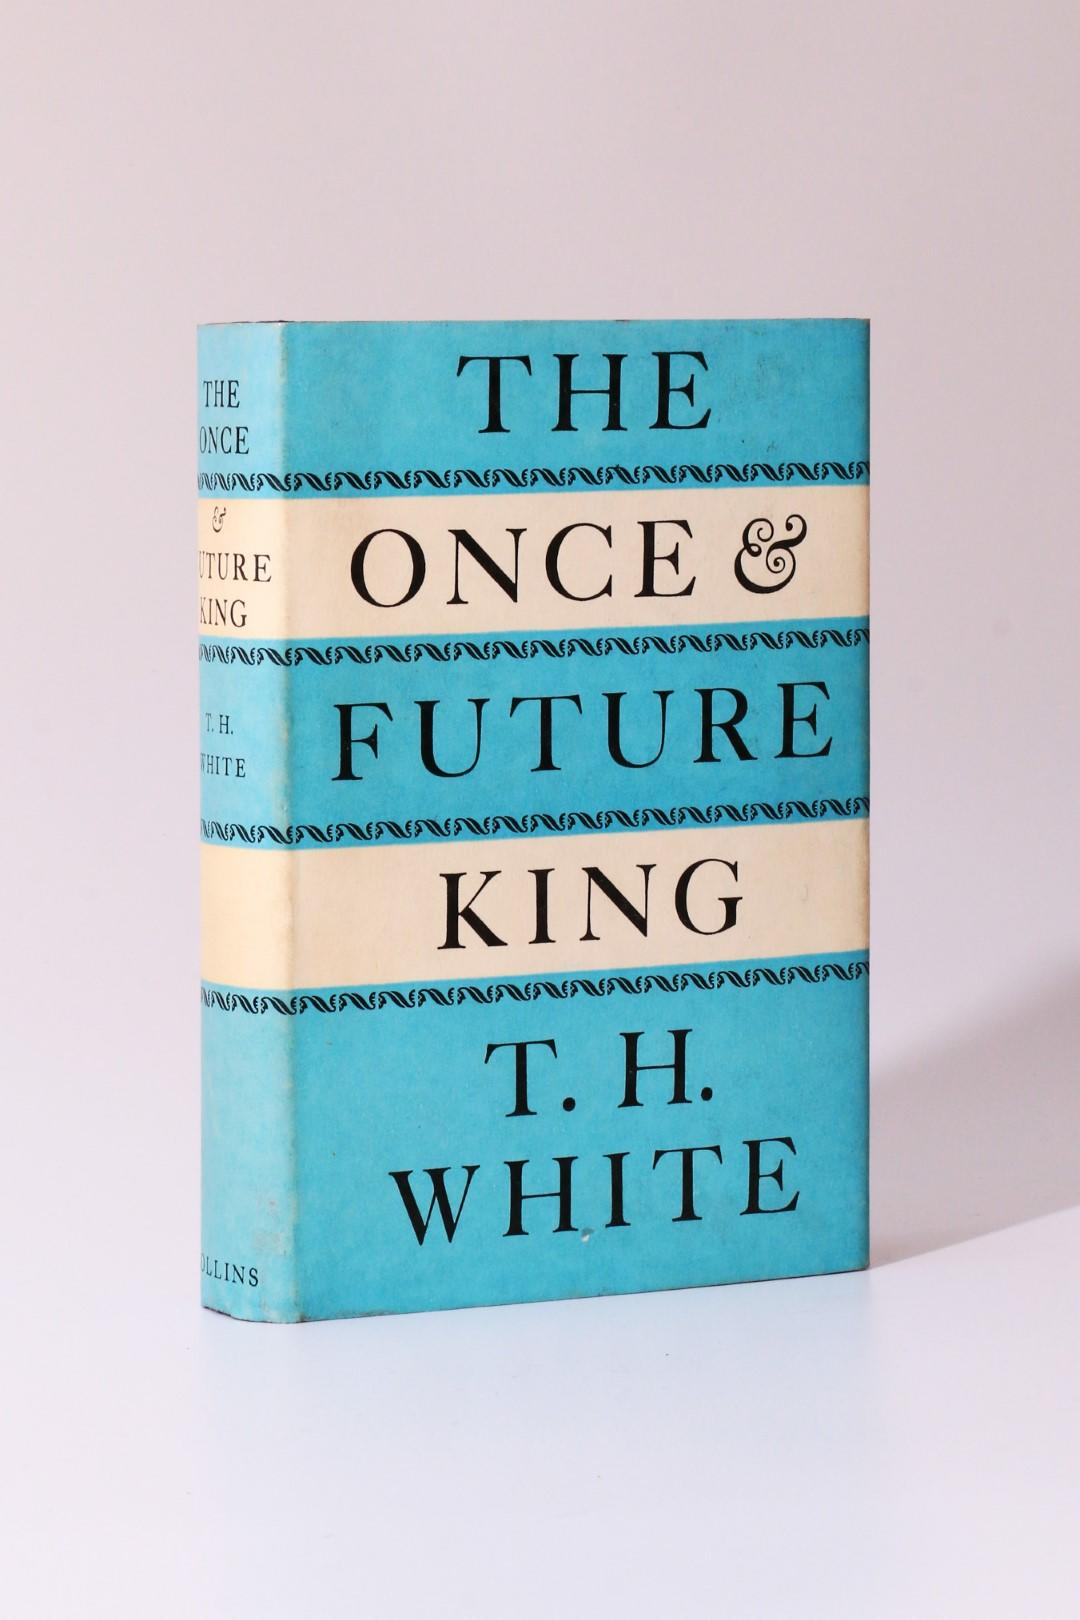 T.H. White - The Once & Future King - Collins, 1958, First Edition.